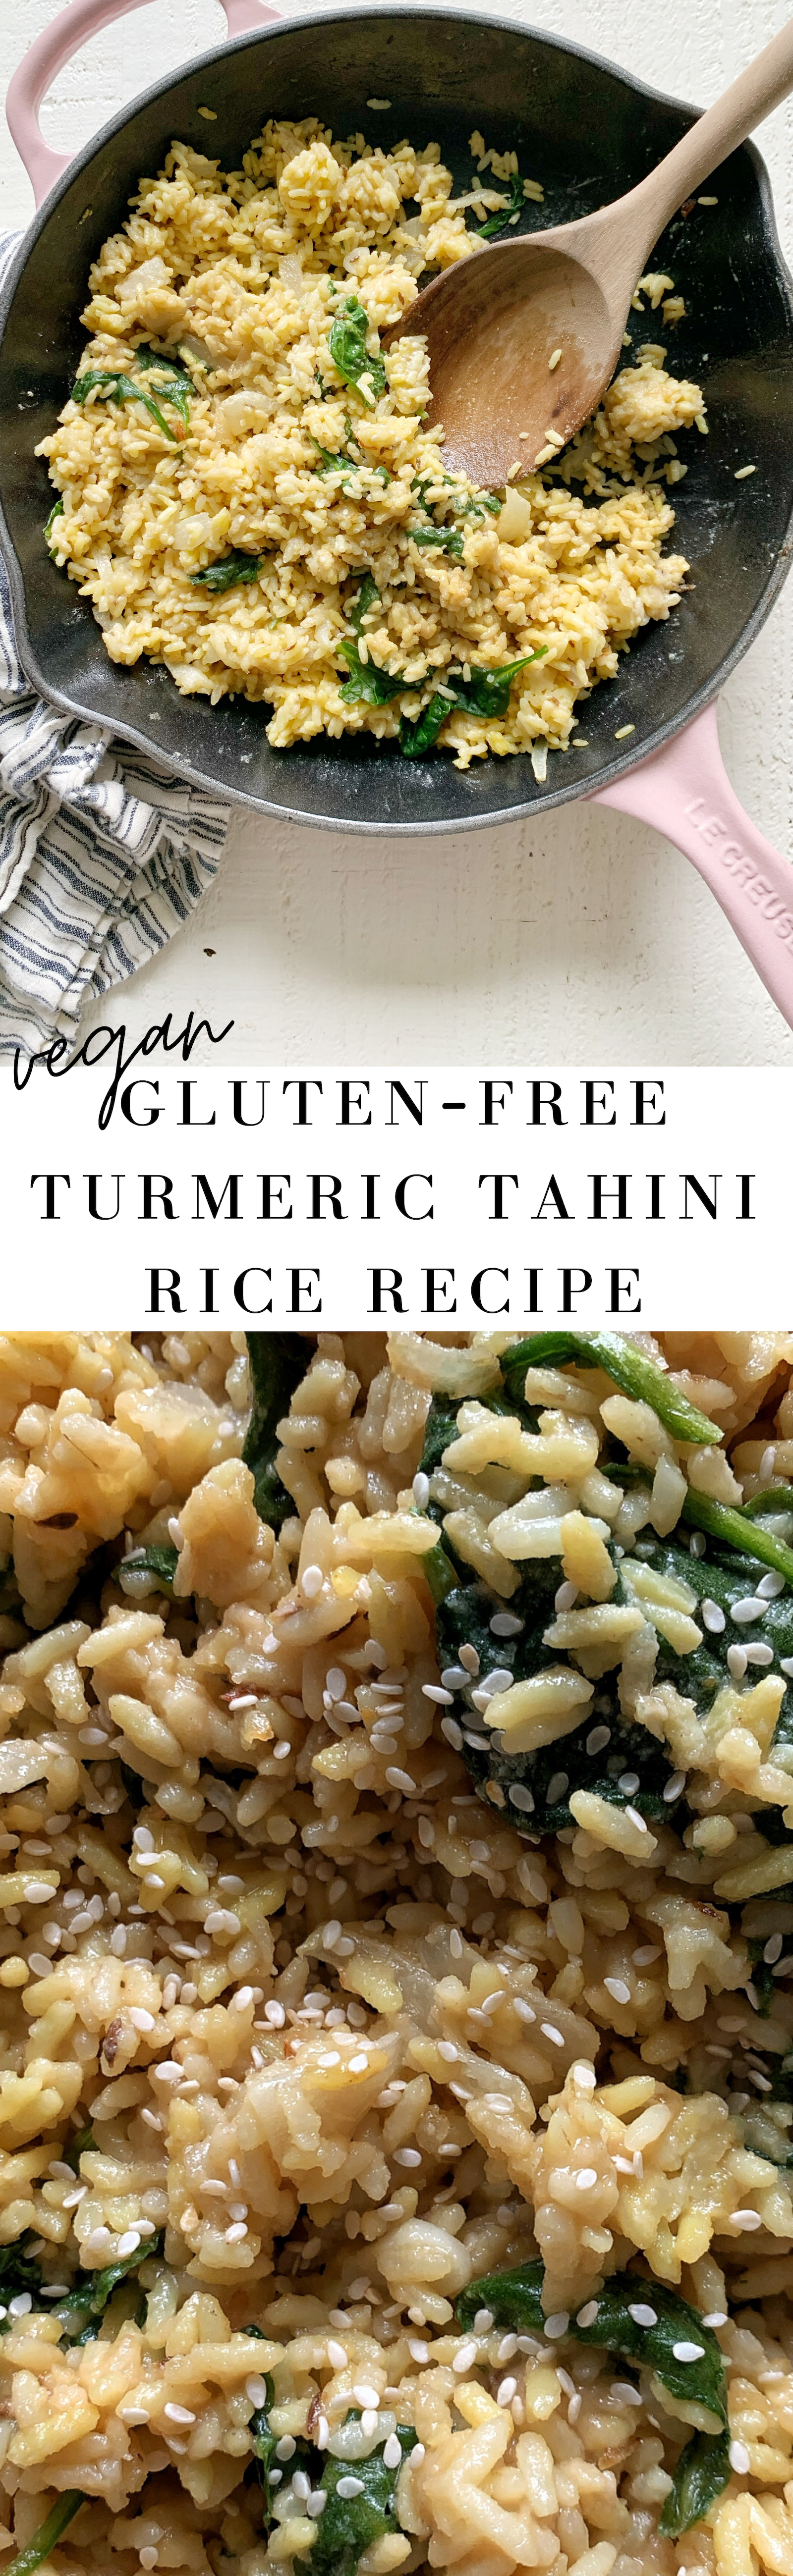 vegan turmeric tahini rice recipe